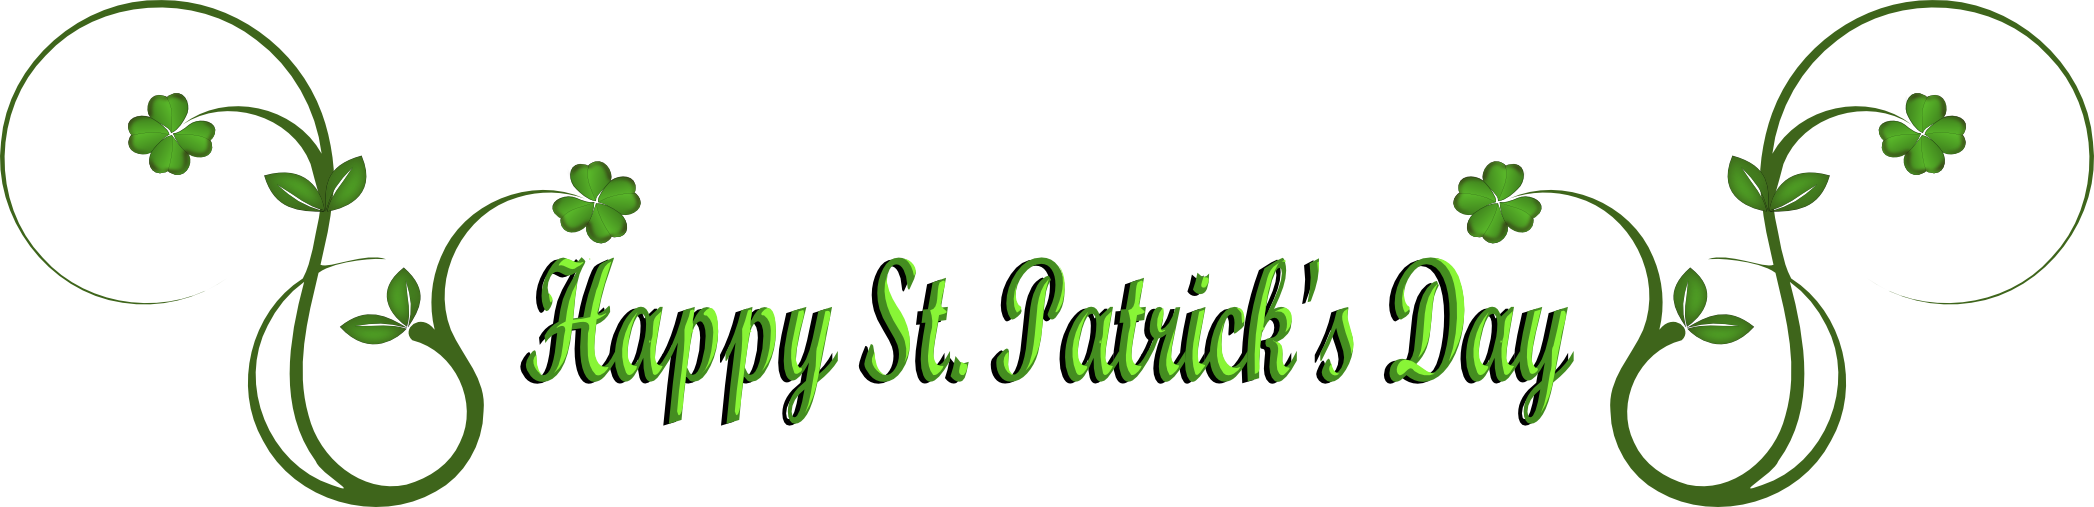 ... Heritage with St. Patrick's Day Clipart - Eye Draw It Eye Draw It